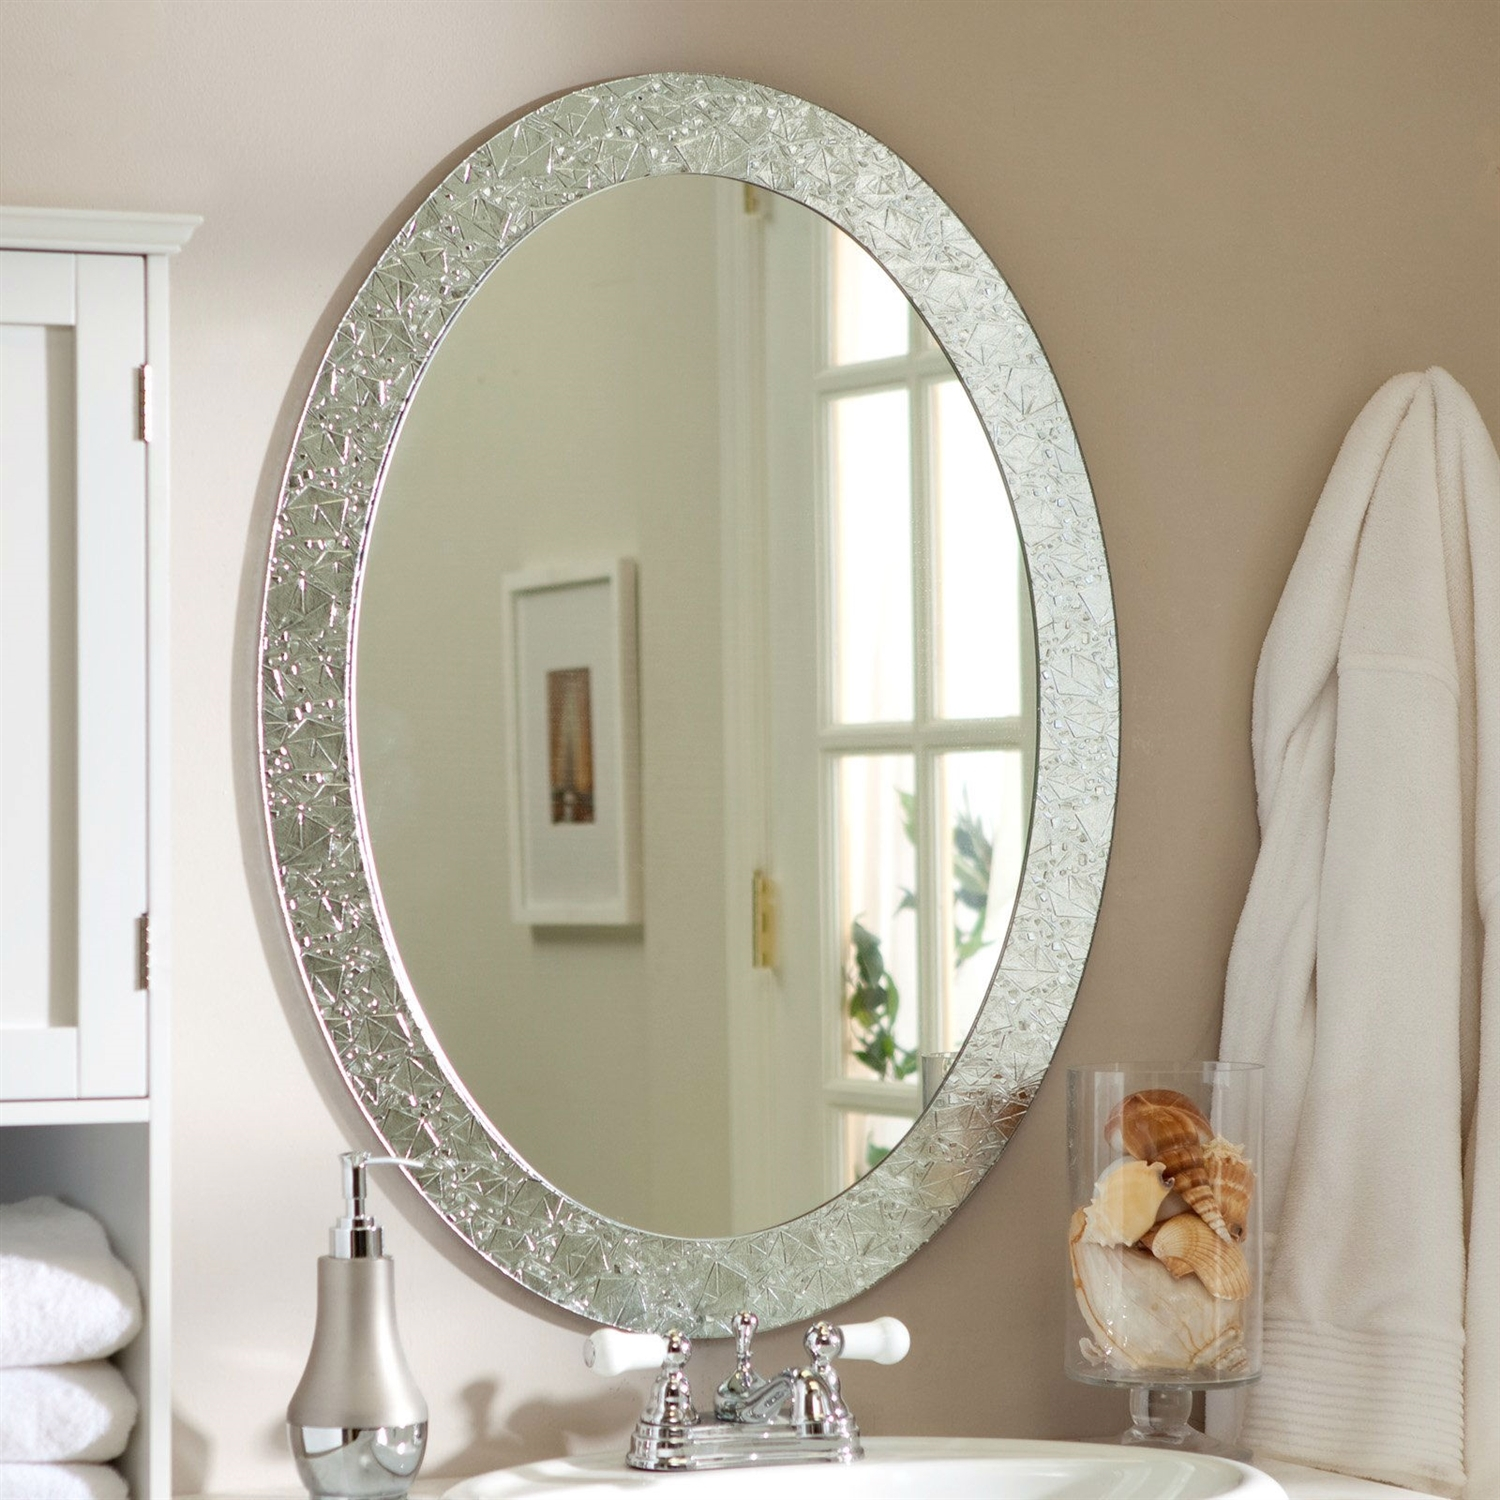 Beautiful Ideas Elegant Wall Mirrors Pretty Oval Frame Wall Shelves Within Pretty Mirrors For Walls (View 6 of 15)